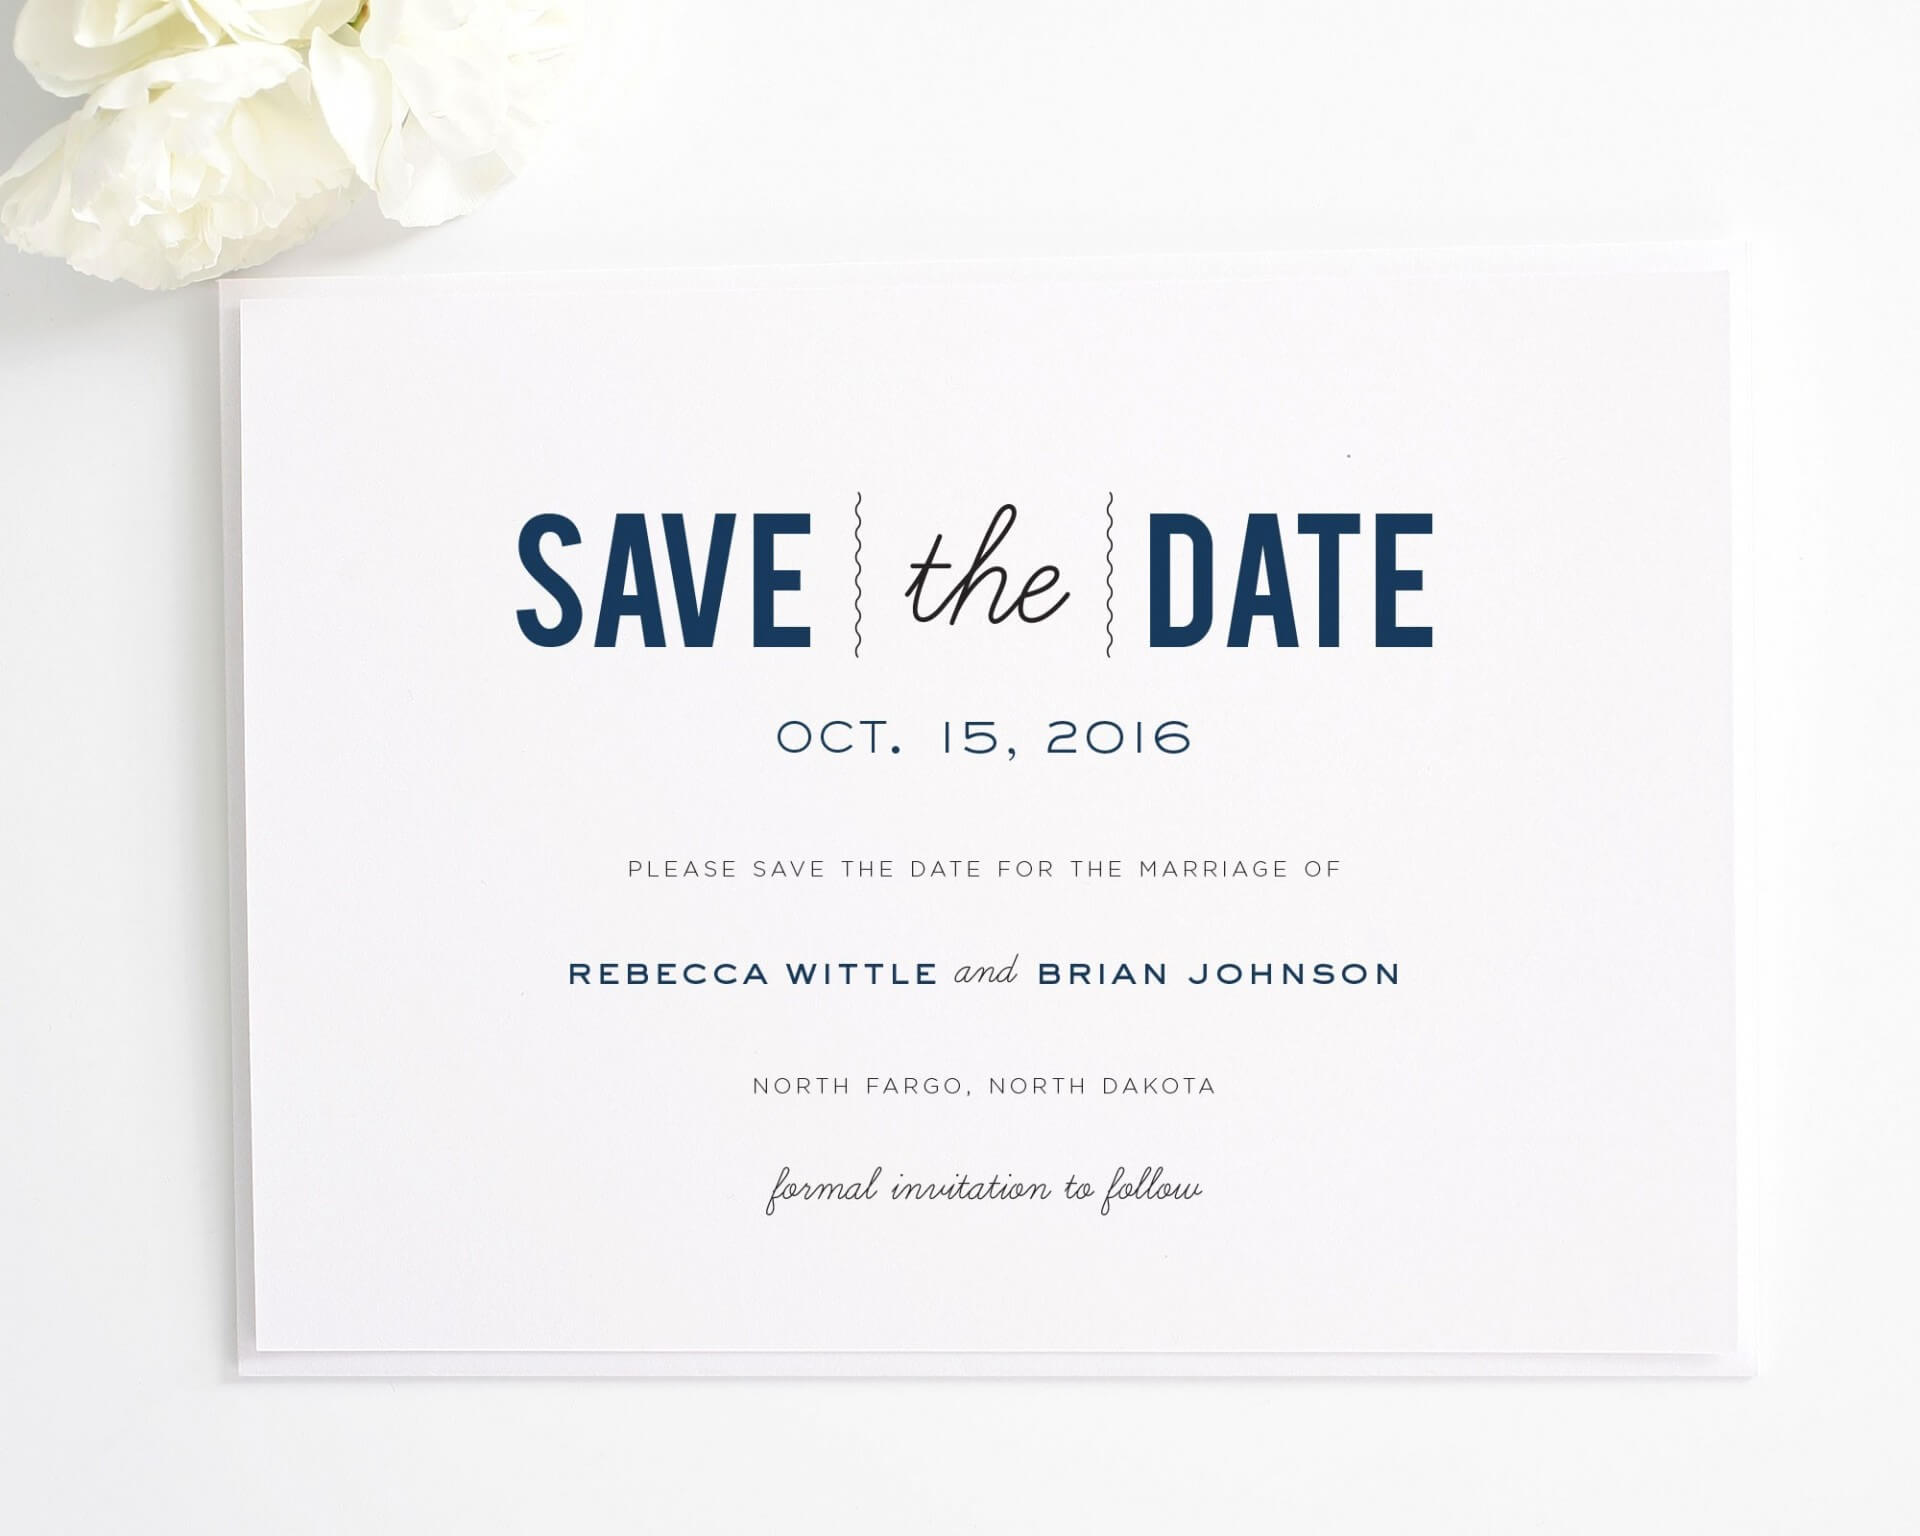 001 Save The Date Free Templates Microsoft Word Template Within Save The Date Templates Word